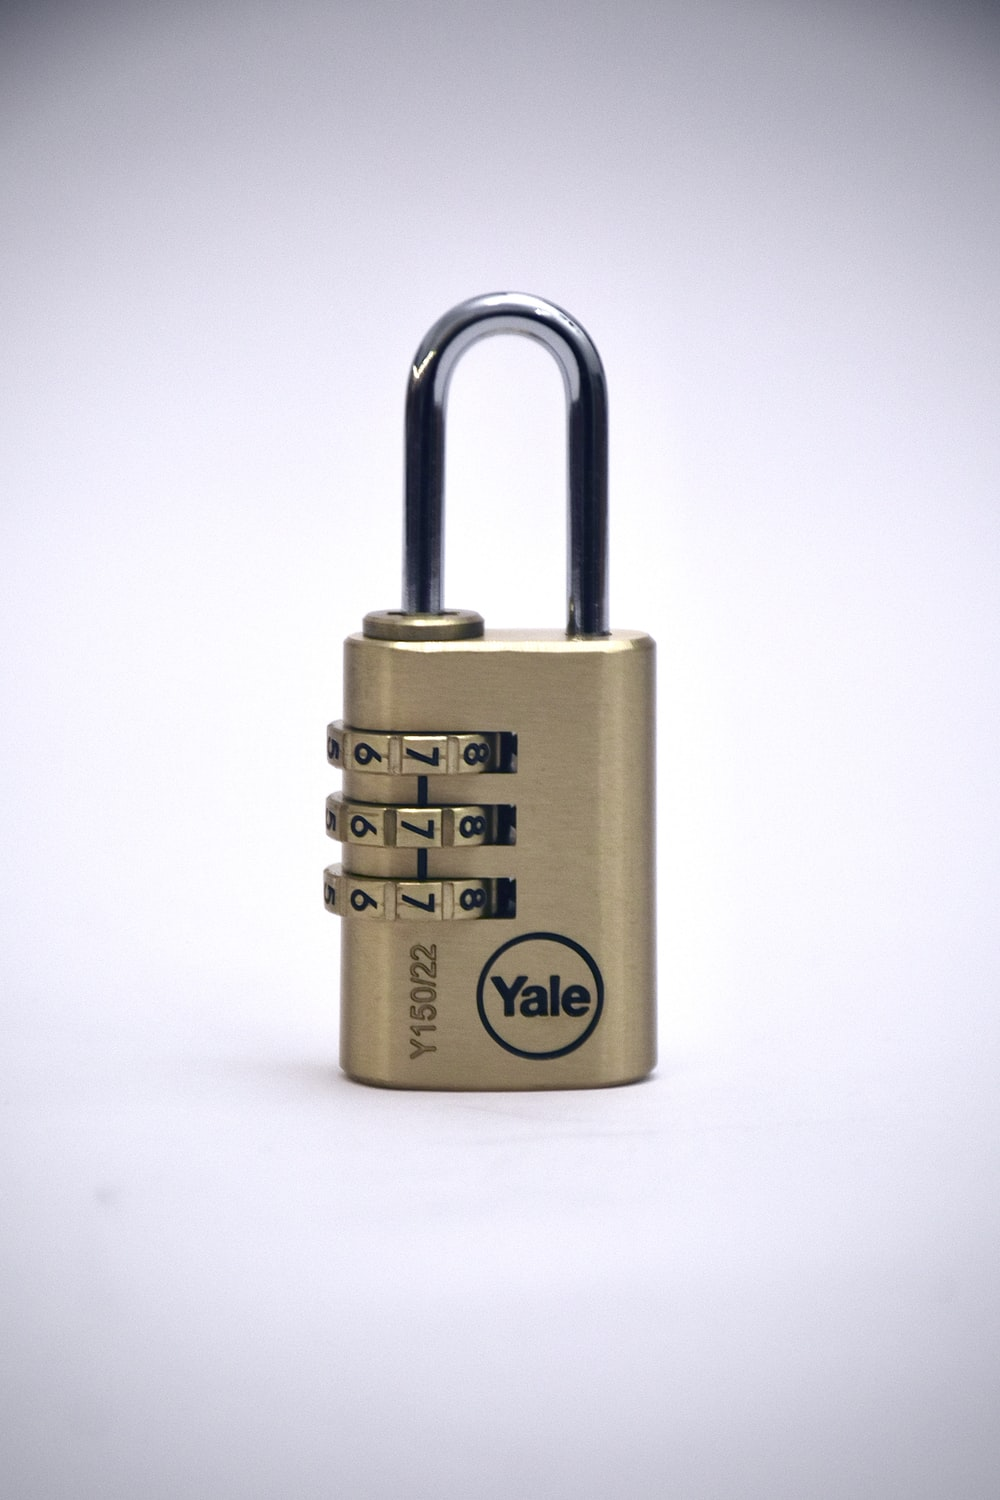 gold padlock on white surface